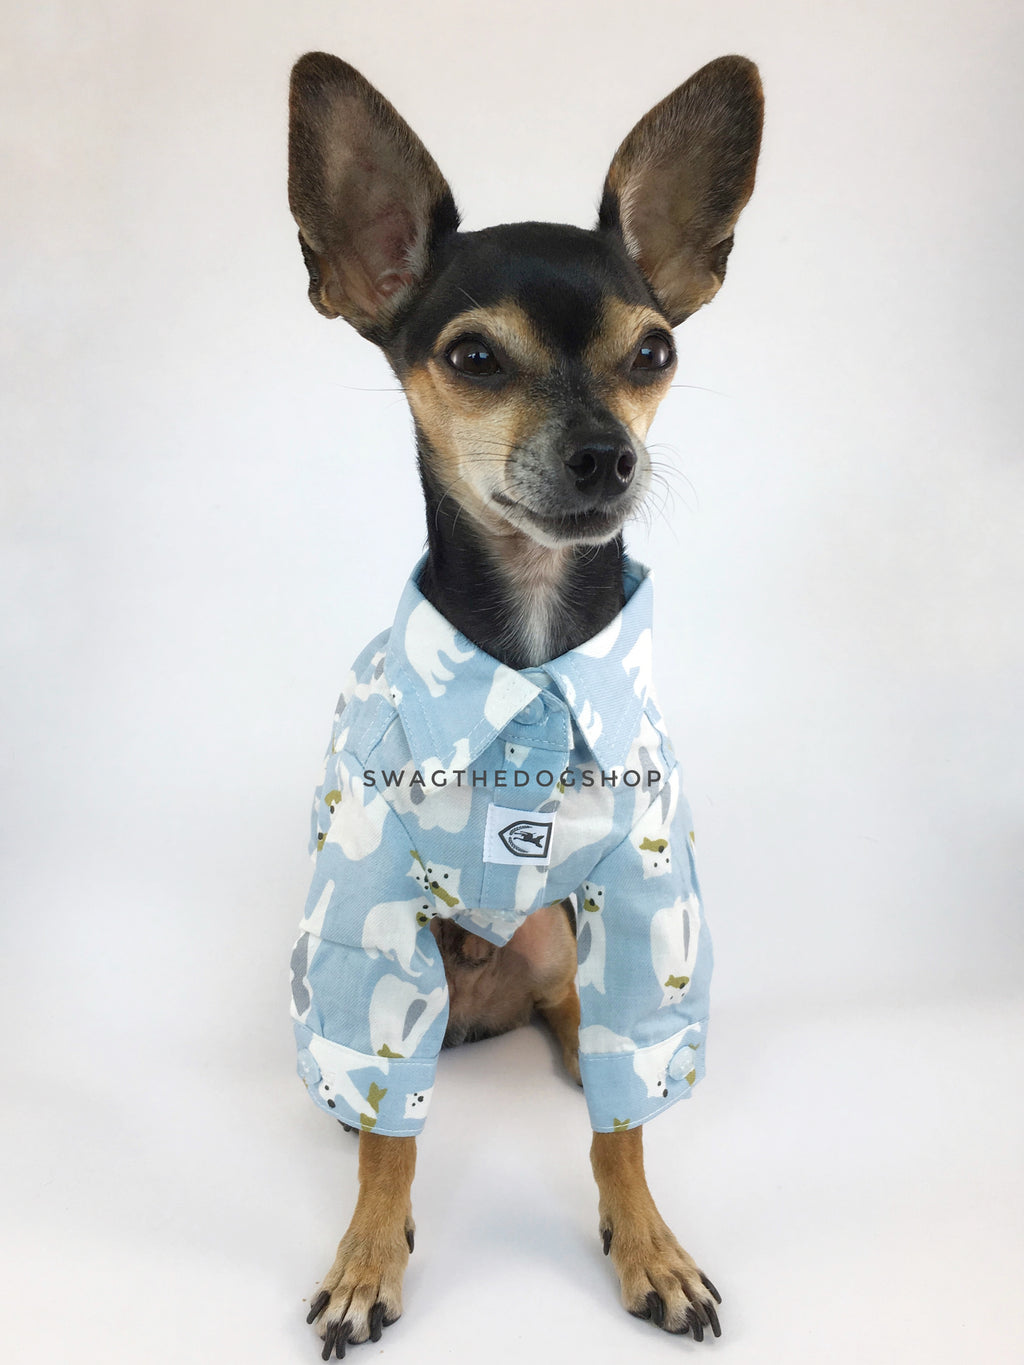 Arctic Expedition Shirt - Cute Chihuahua Dog Wearing Full Front View. Polar Bear Fishing Expedition Blue Button Shirt